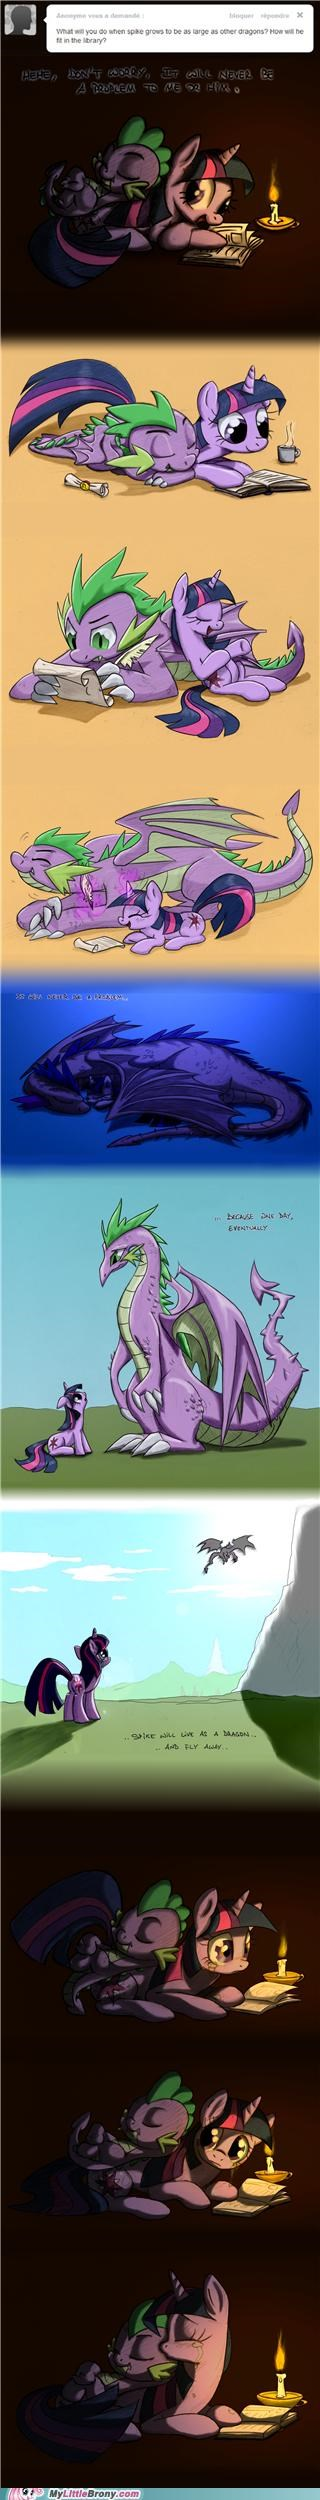 best of week brony tears comics dragon spike twilight sparkle - 5269047040